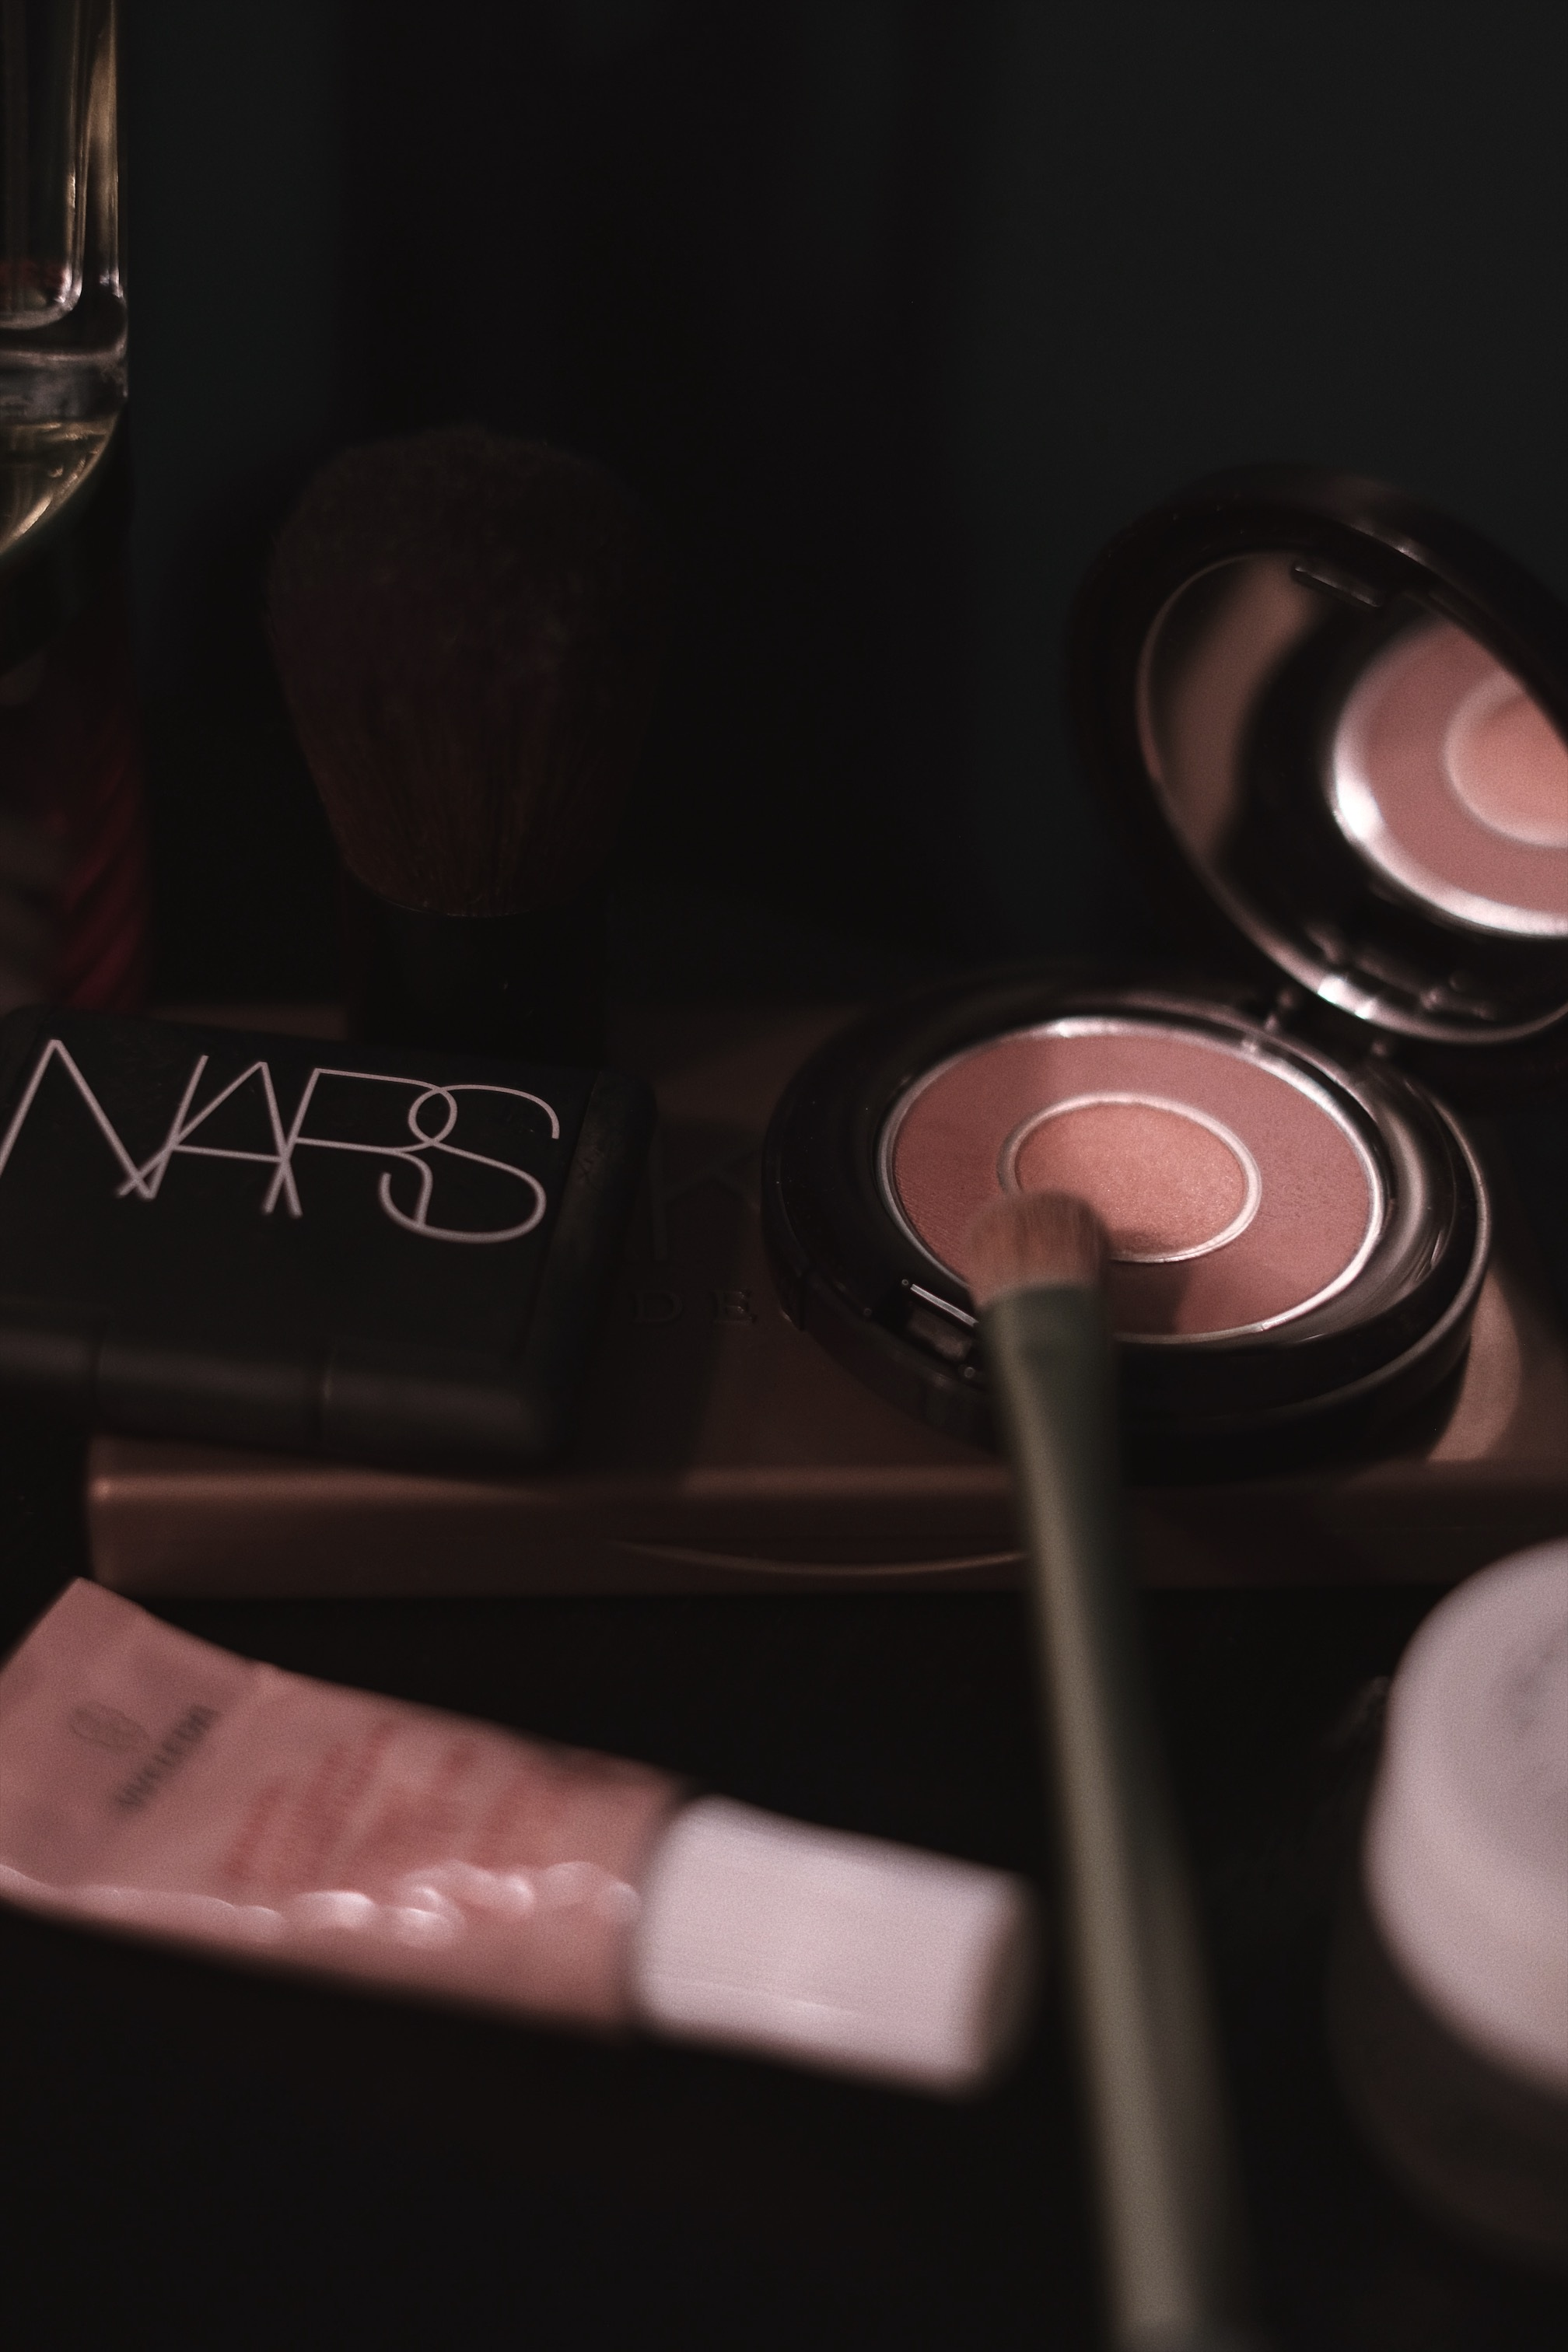 NARS mini blush 'orgasm' - The NARS 'orgasm' blusher is one of my favourite products from NARS. Cheeks get flushed with the perfect blend of peachy pink and golden shimmer. Sounds perfect for summer, right?